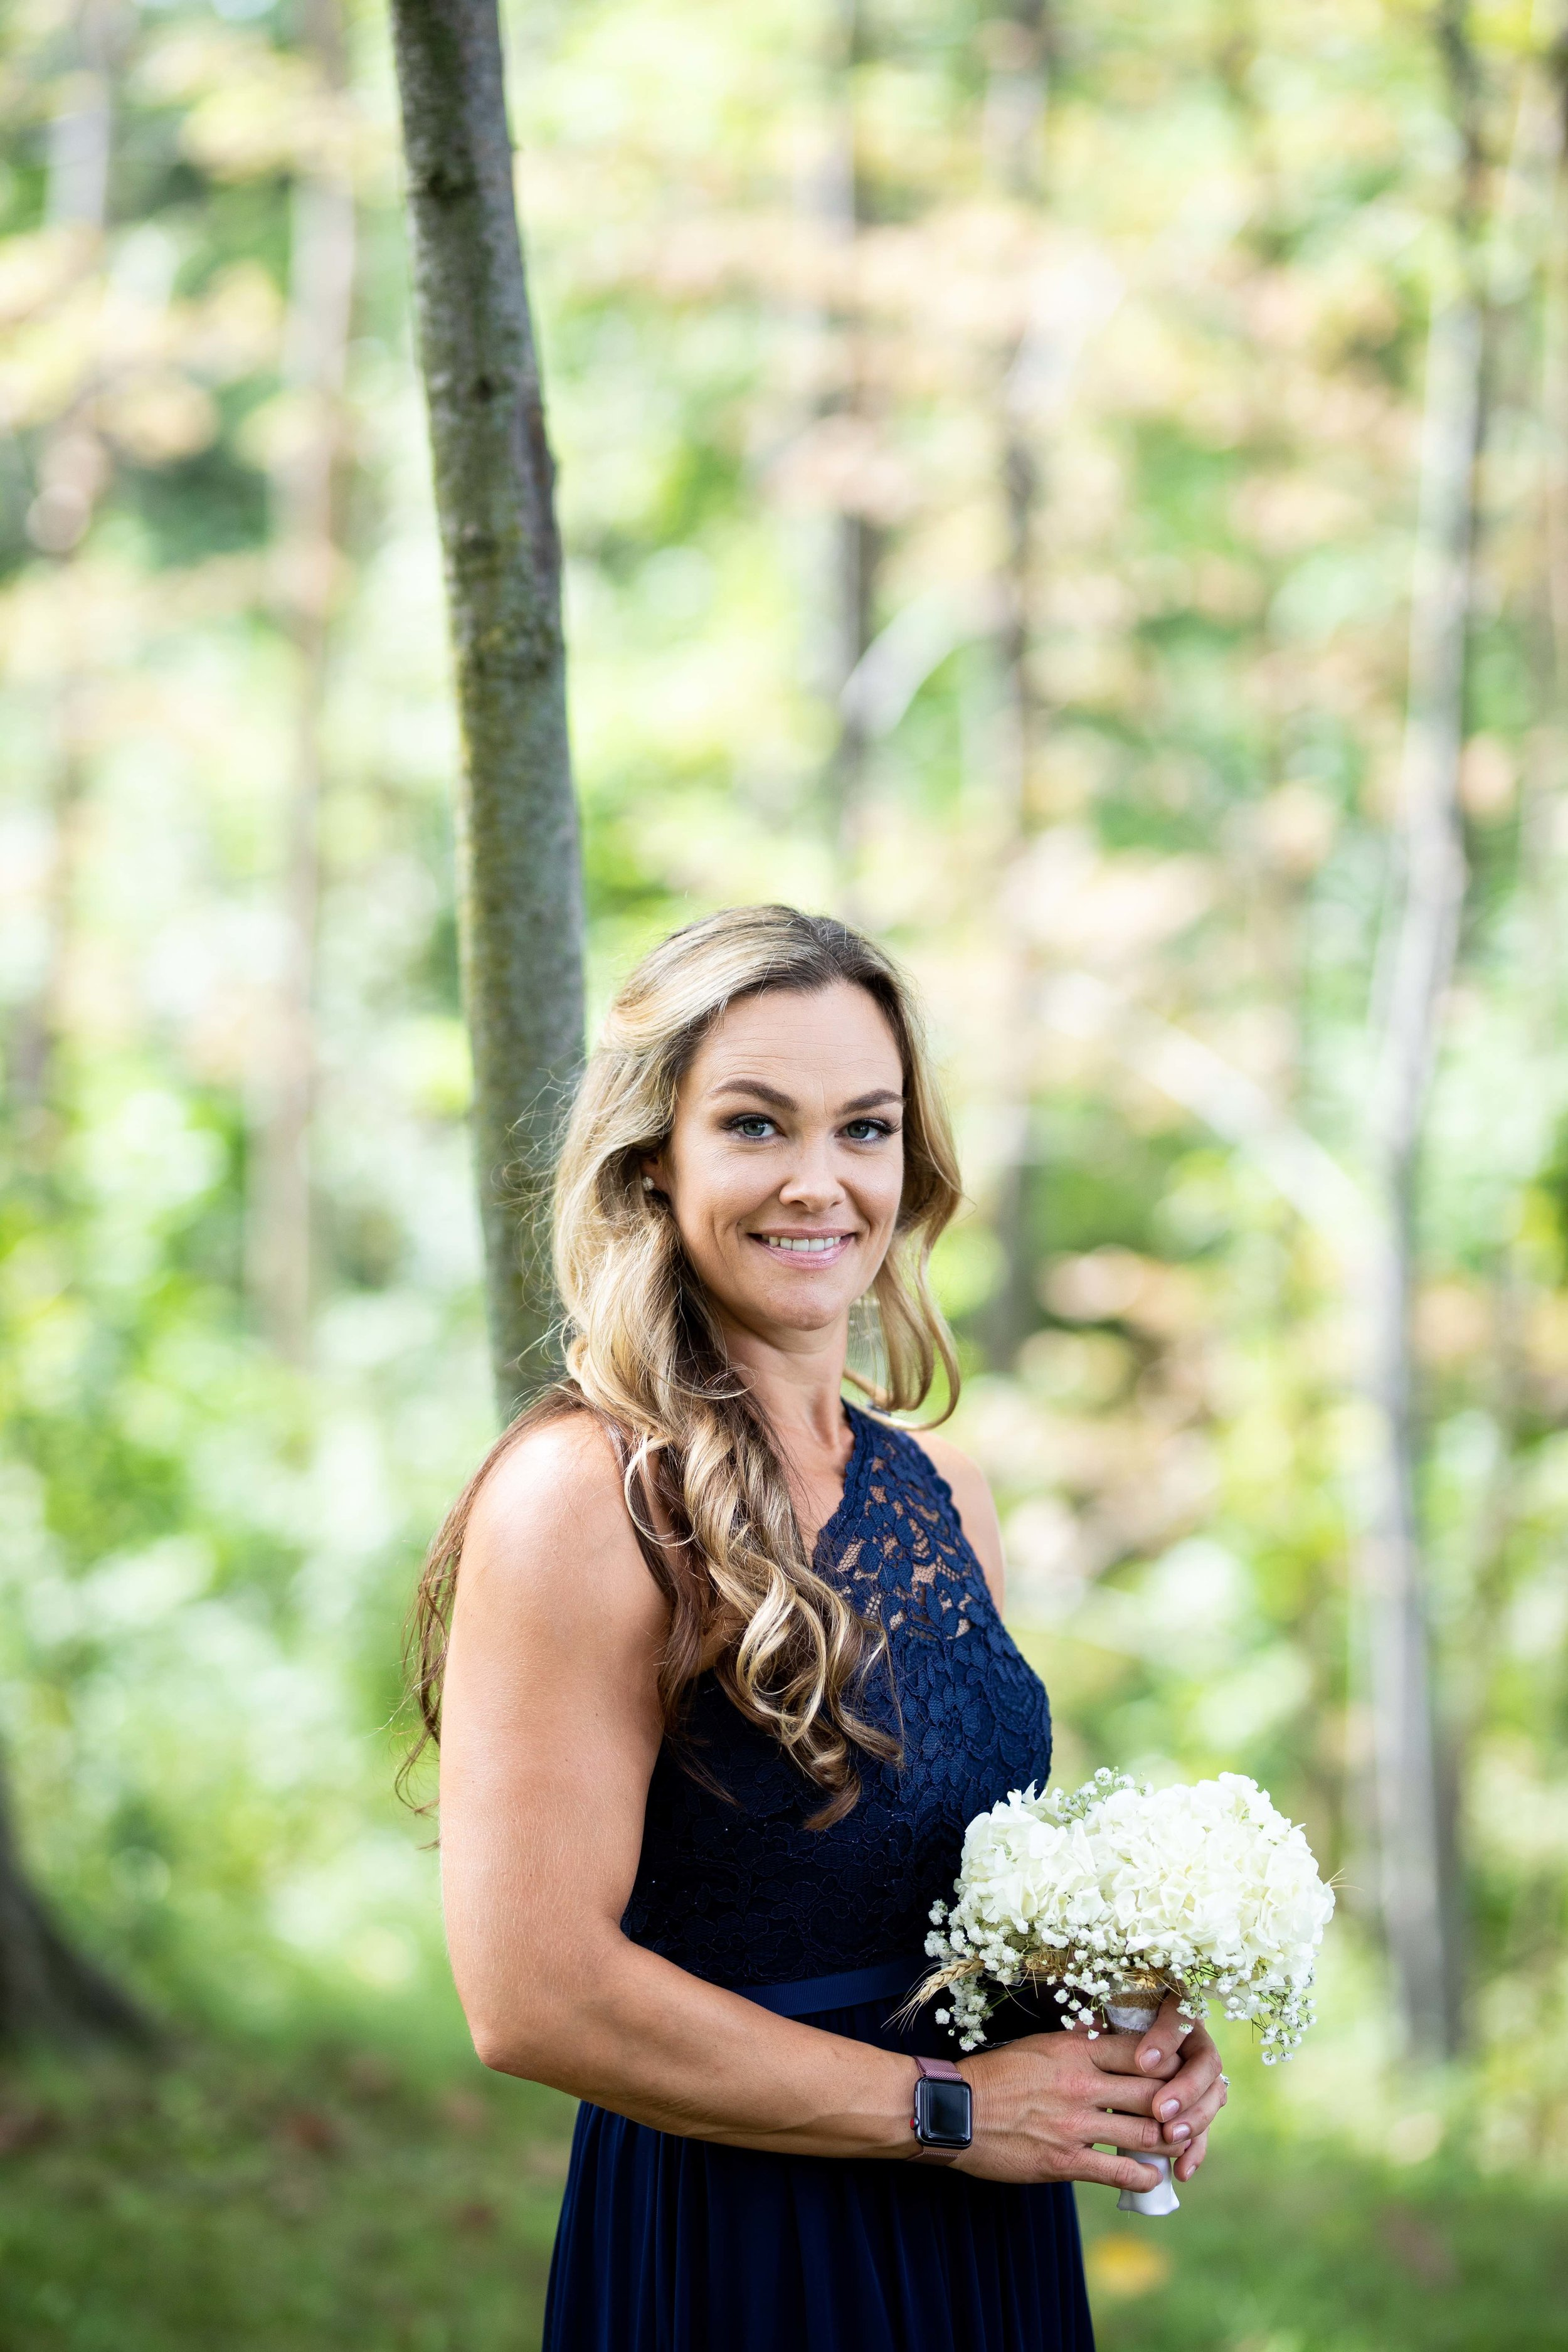 Wedding-Jodie-Aldred-Photography-Chatham-Kent-Elgin-Middlesex-London-Ontario.jpg